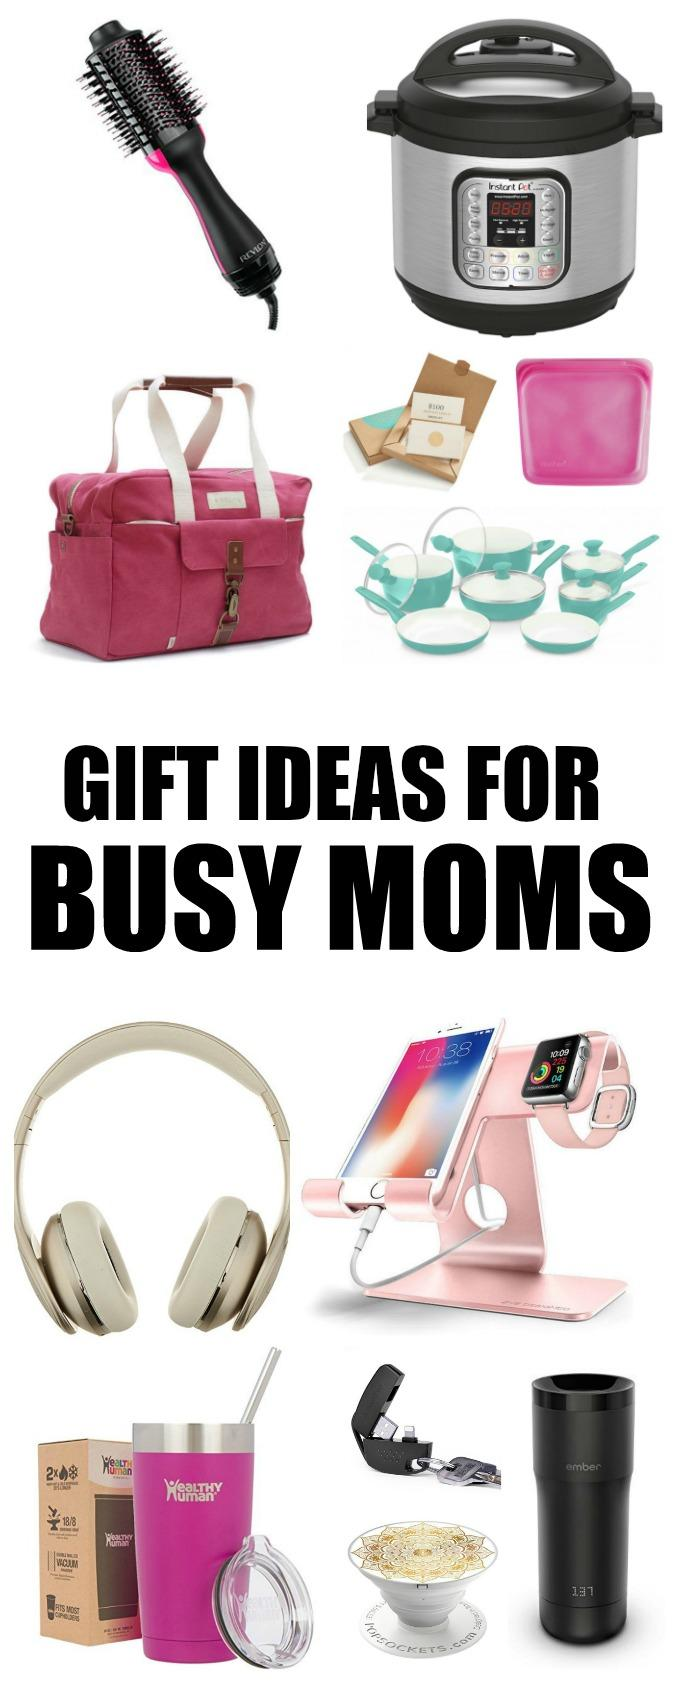 These Gift Ideas For Busy Moms are the perfect holiday presents for all the moms in your life this Christmas holiday!